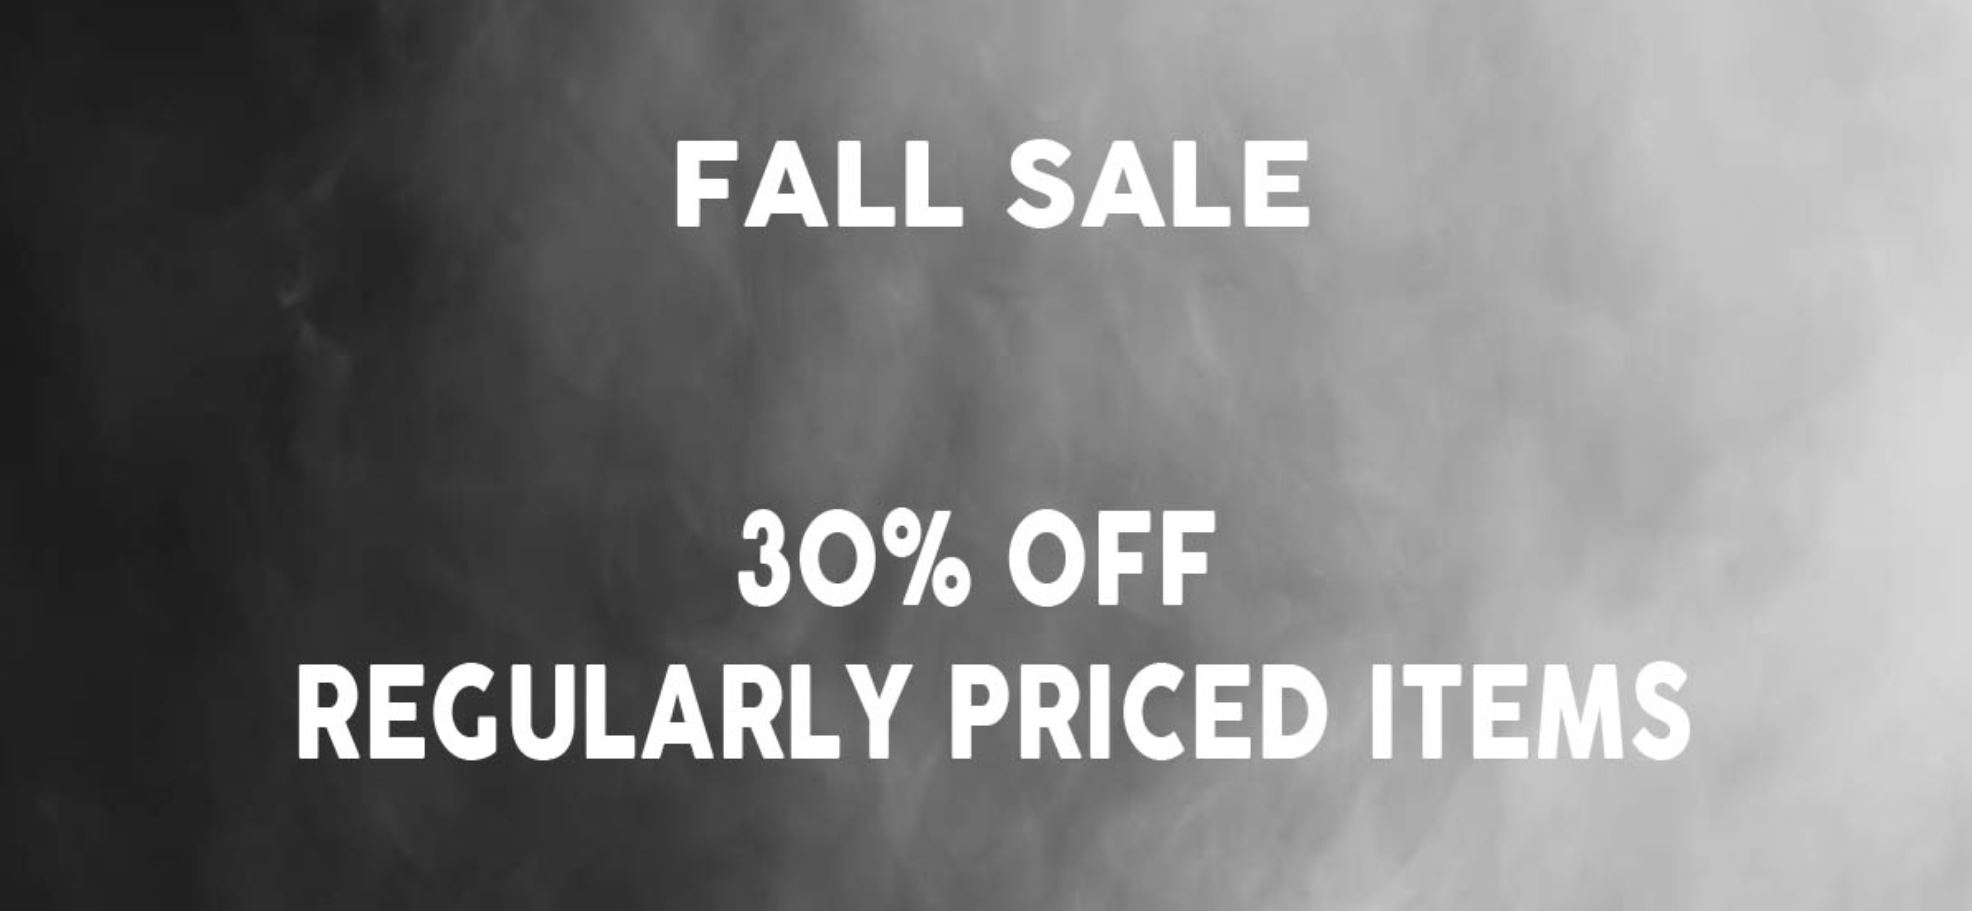 renarts fall sale